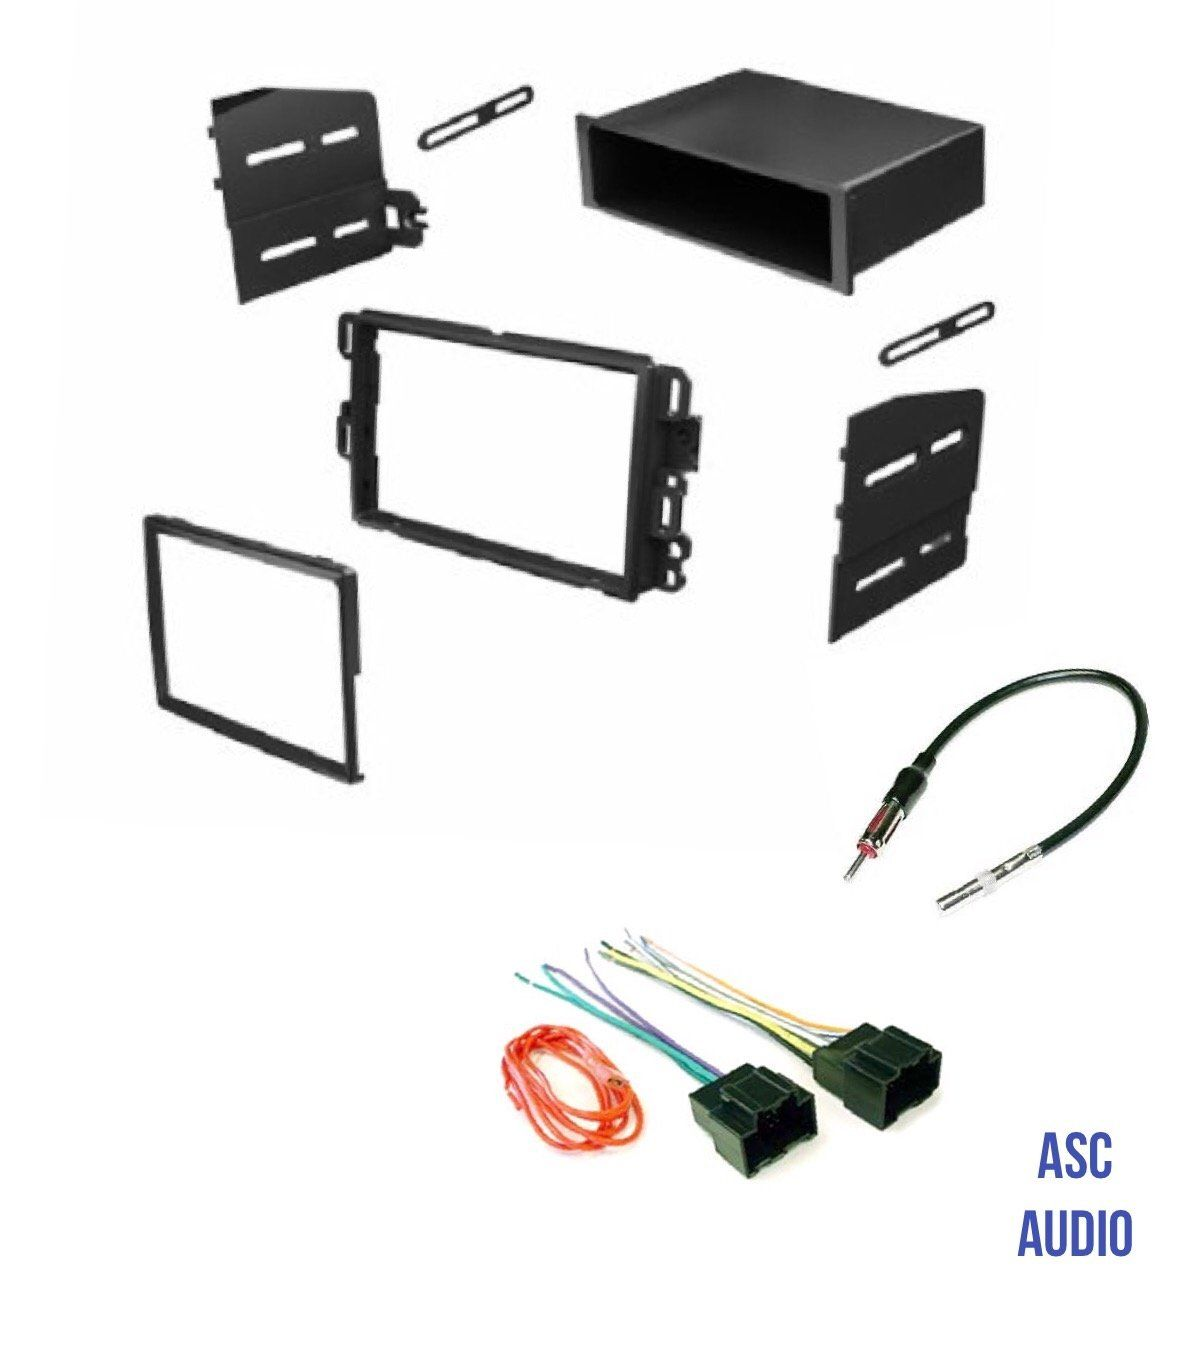 5a29dfae1512d1aaeca596a396162f89 asc audio car stereo dash kit, wire harness, and antenna adapter  at readyjetset.co